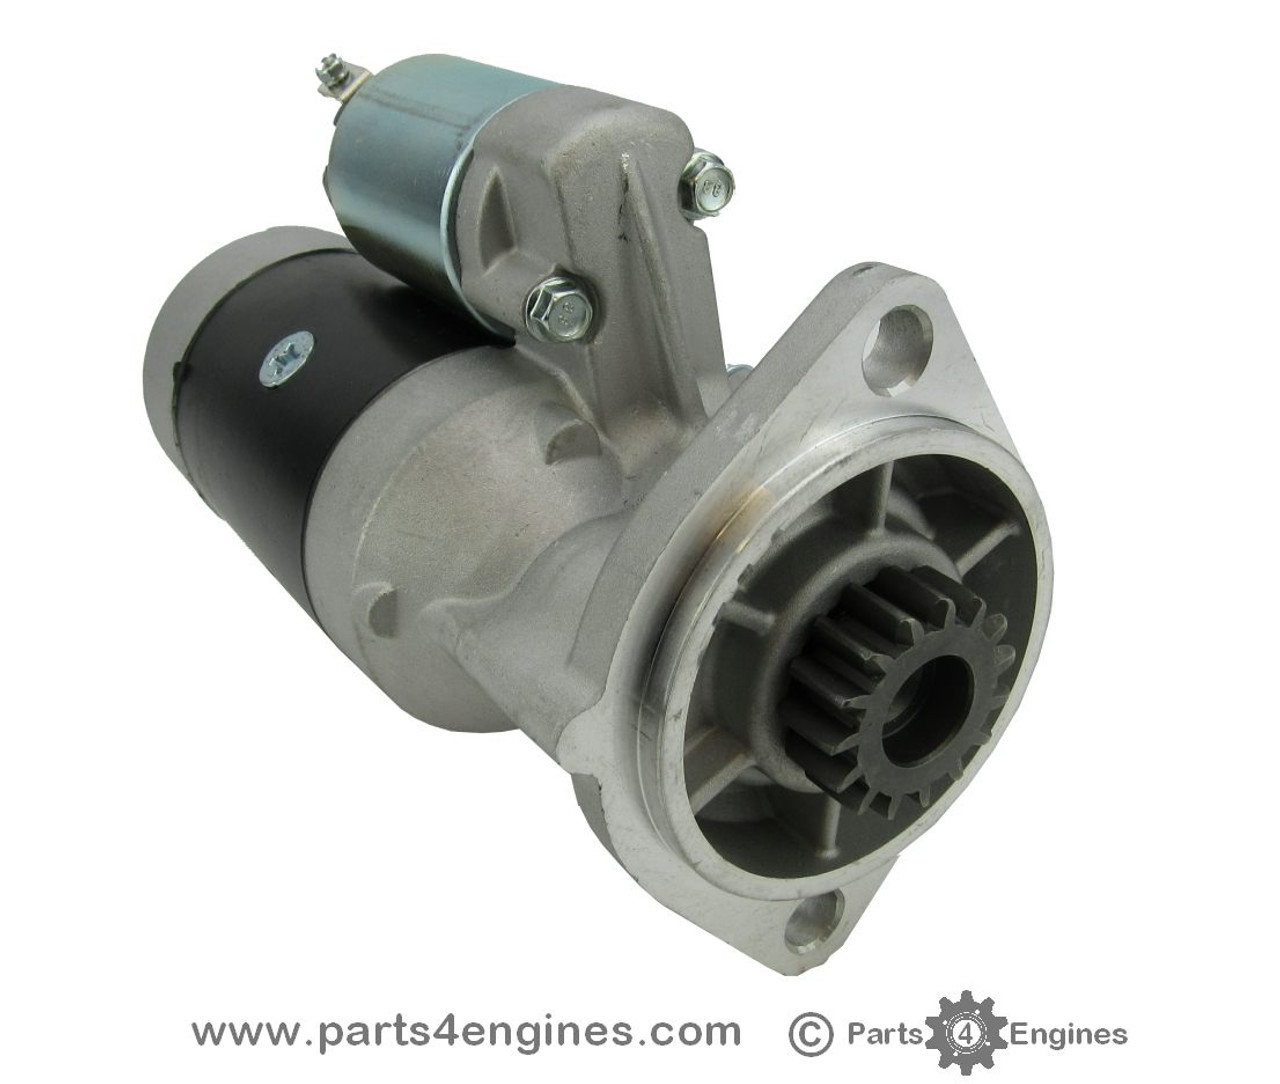 Yanmar 1GM10L Starter Motor - parts4engines.com